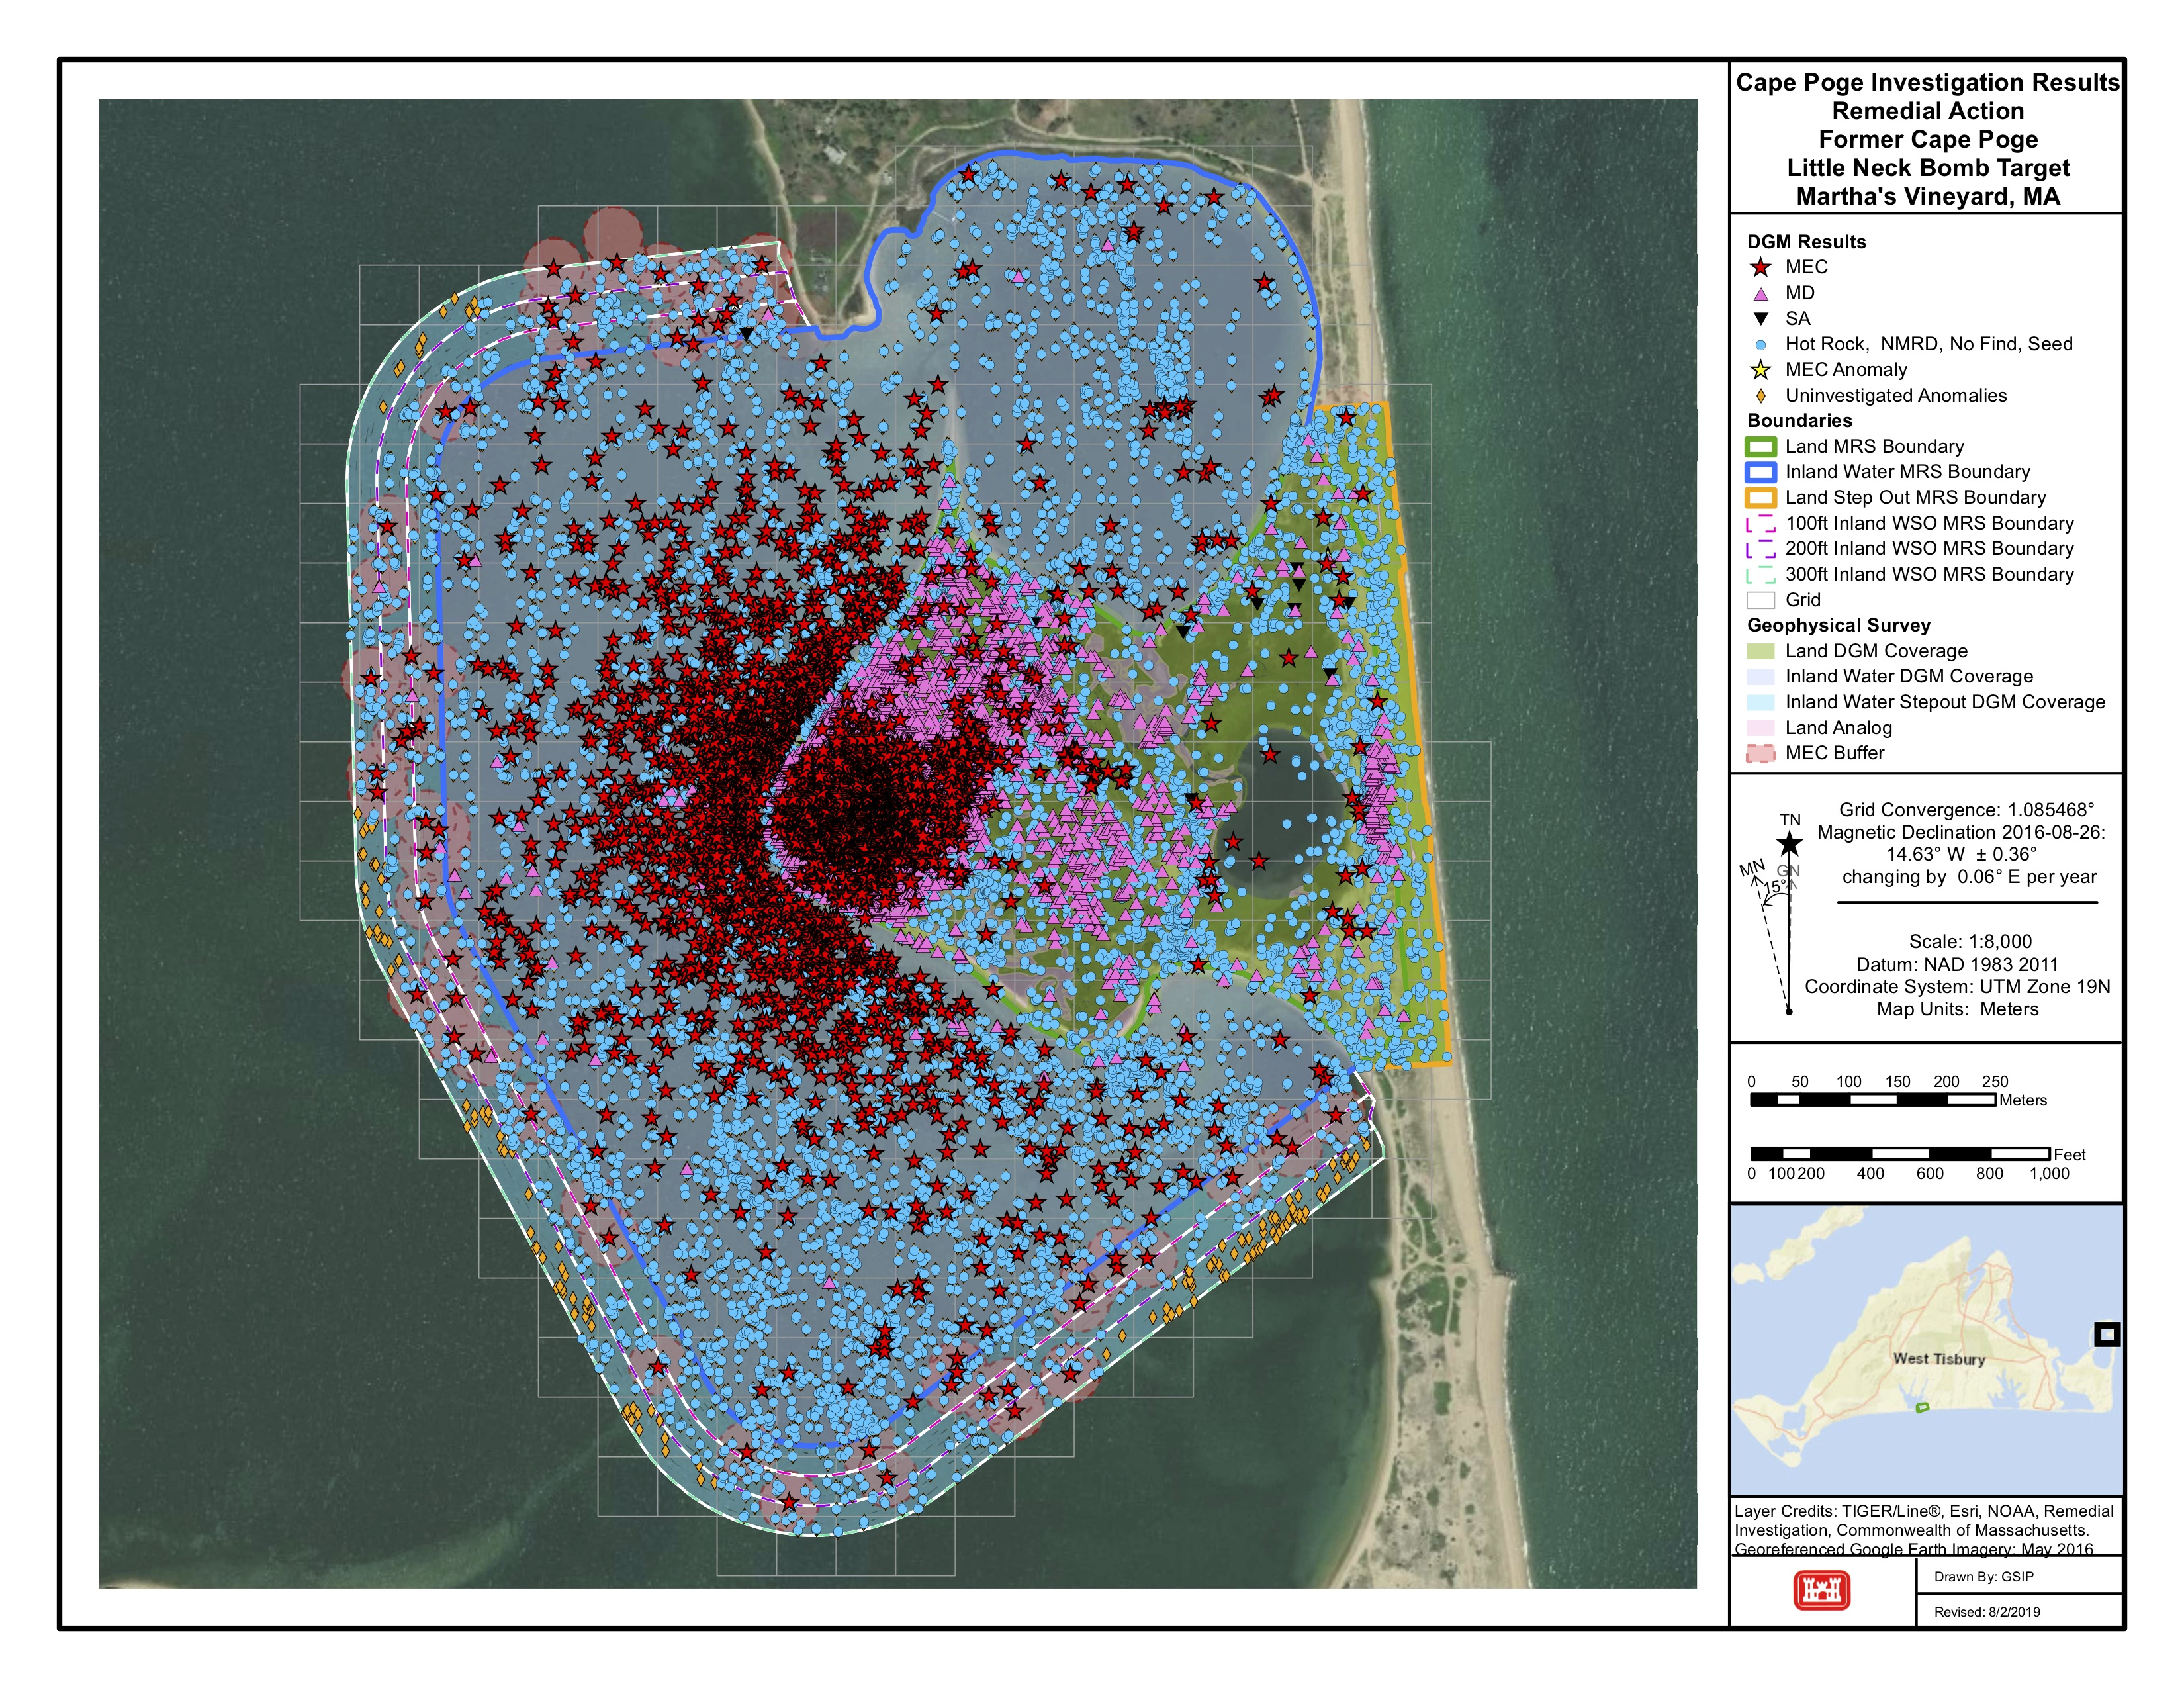 A map of the Cape Poge munitions recovery area. Red stars are munitions and explosives of concern (MEC). Pink triangles are munitions debris.